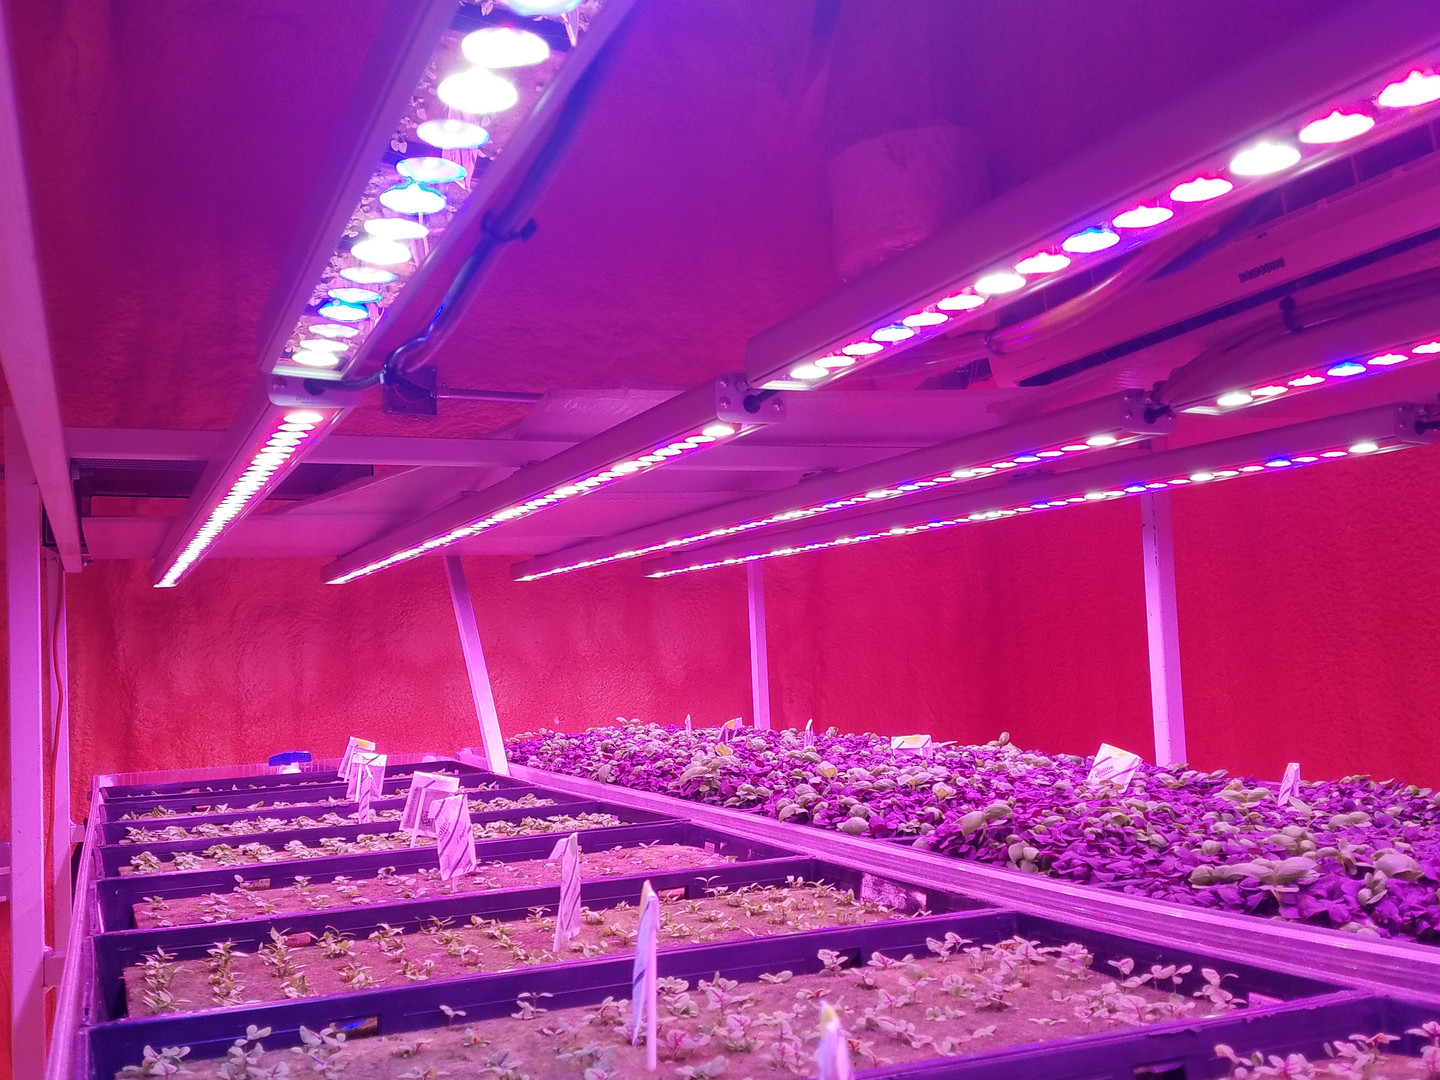 Seedling room lights and plants